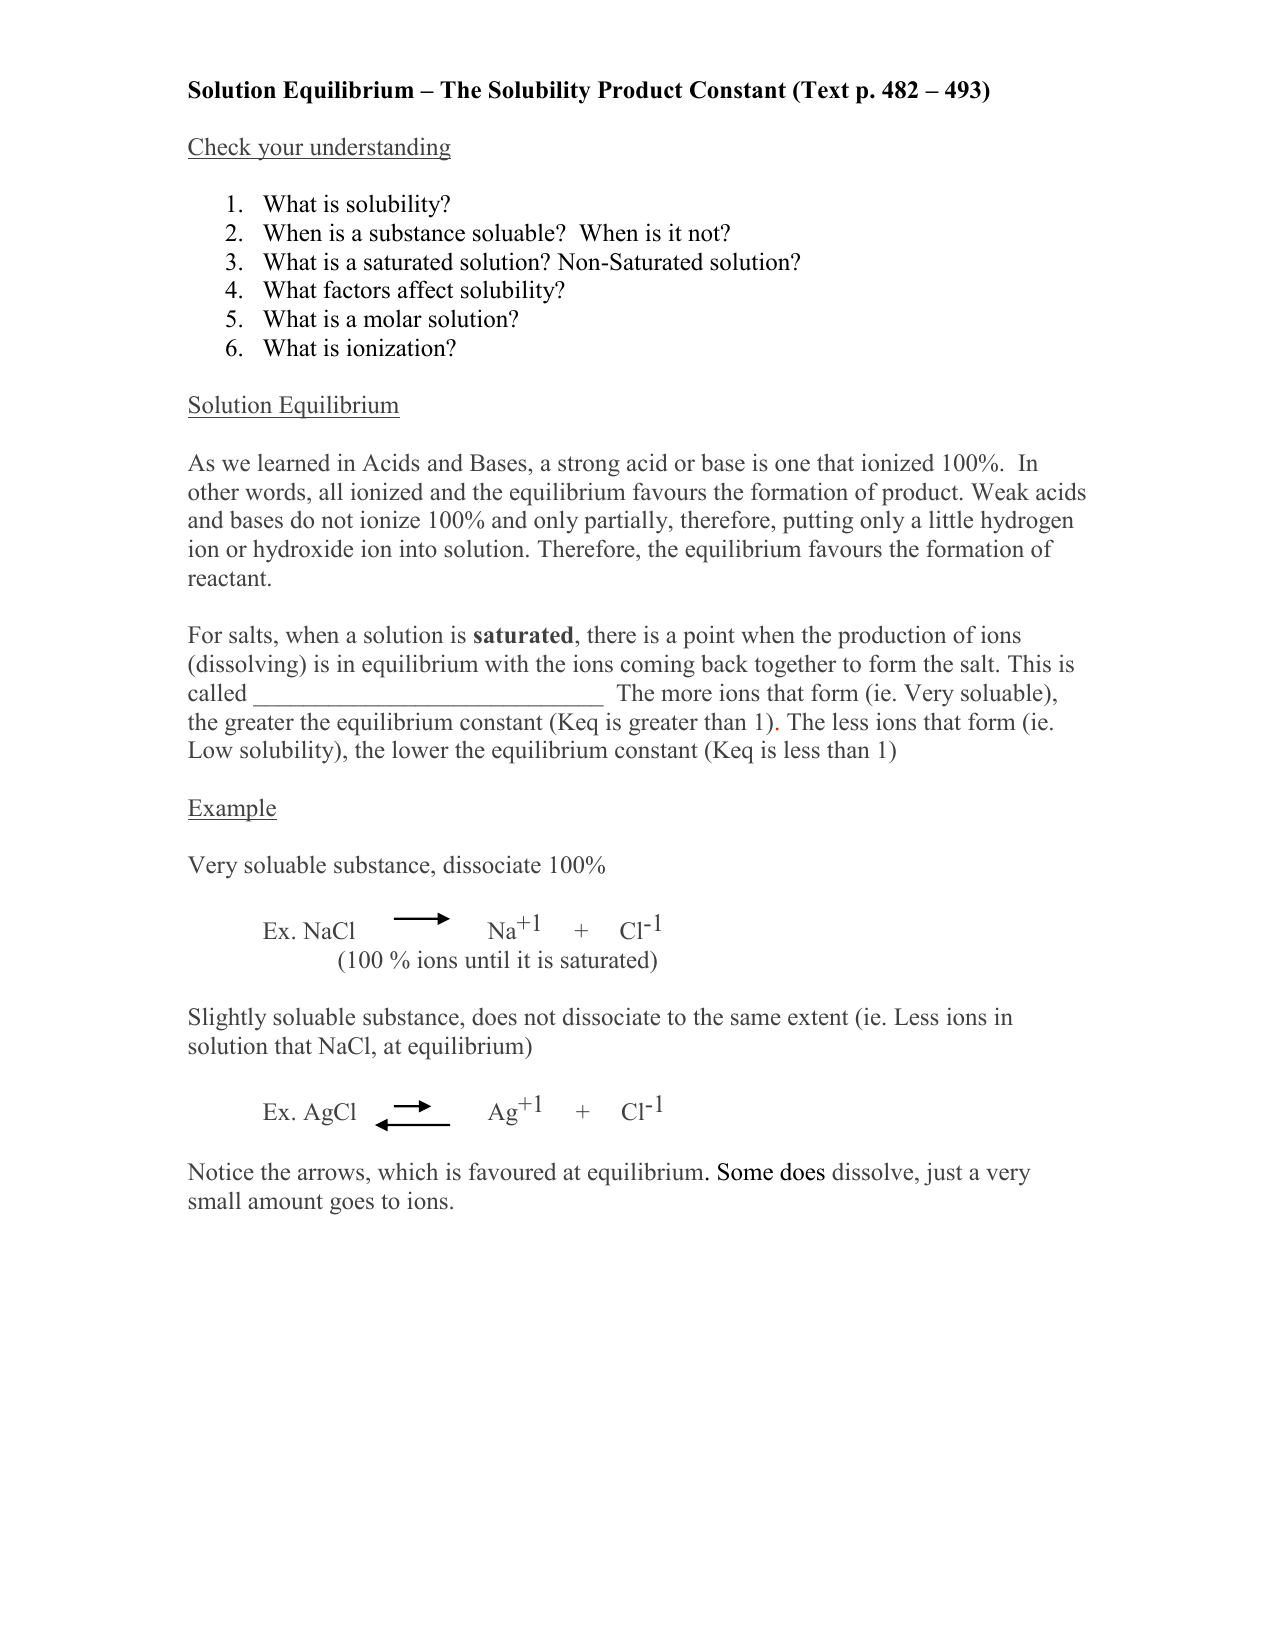 Solution Equilibrium The Solubility Product Constant Text p